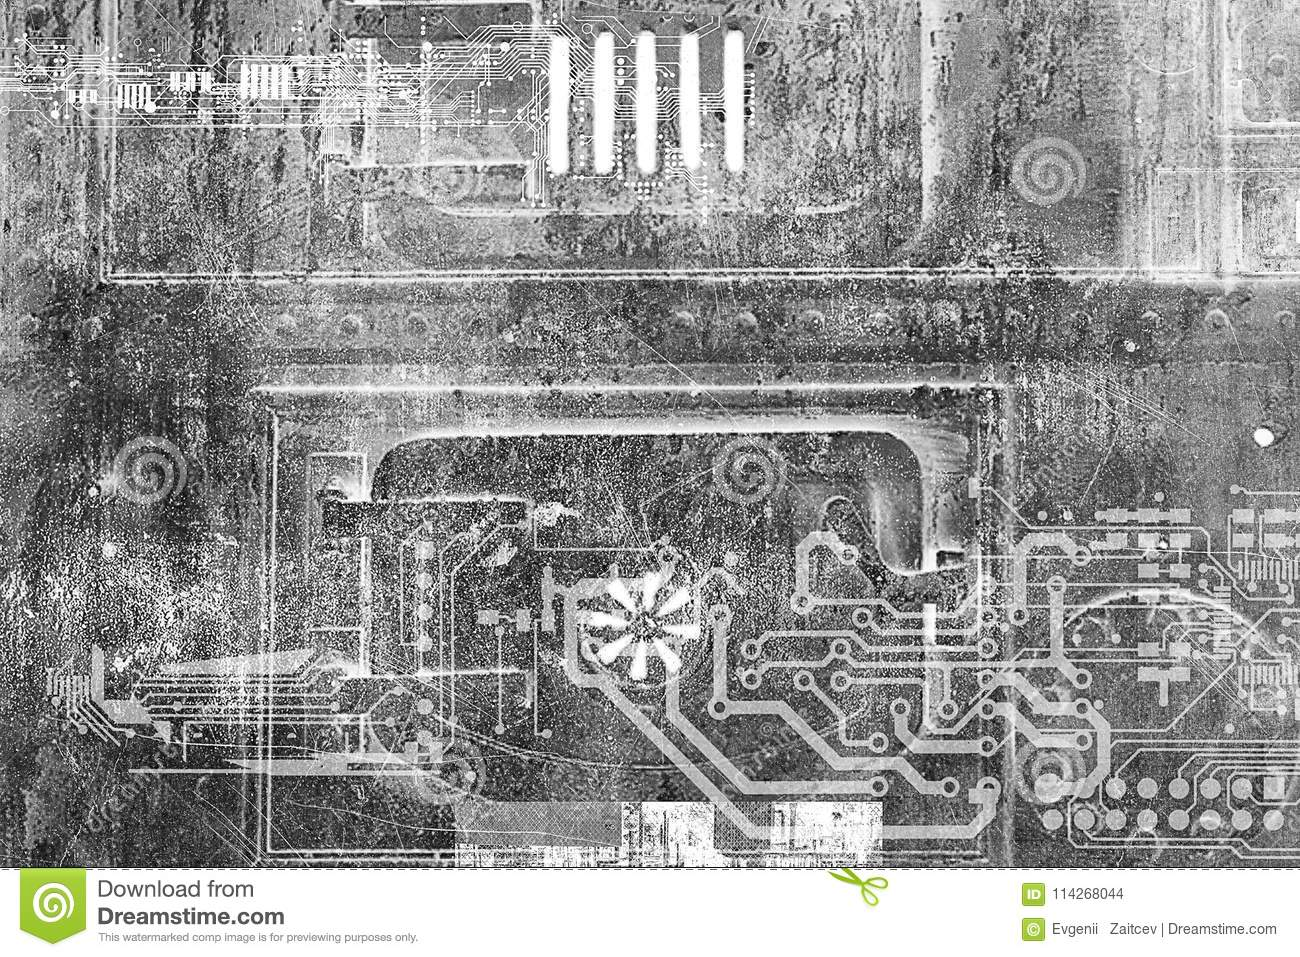 Abstract futuristic cyber grunge industrial vintage background abstract futuristic cyber grunge industrial vintage background blueprint on old grungy surface futuristic technology malvernweather Images